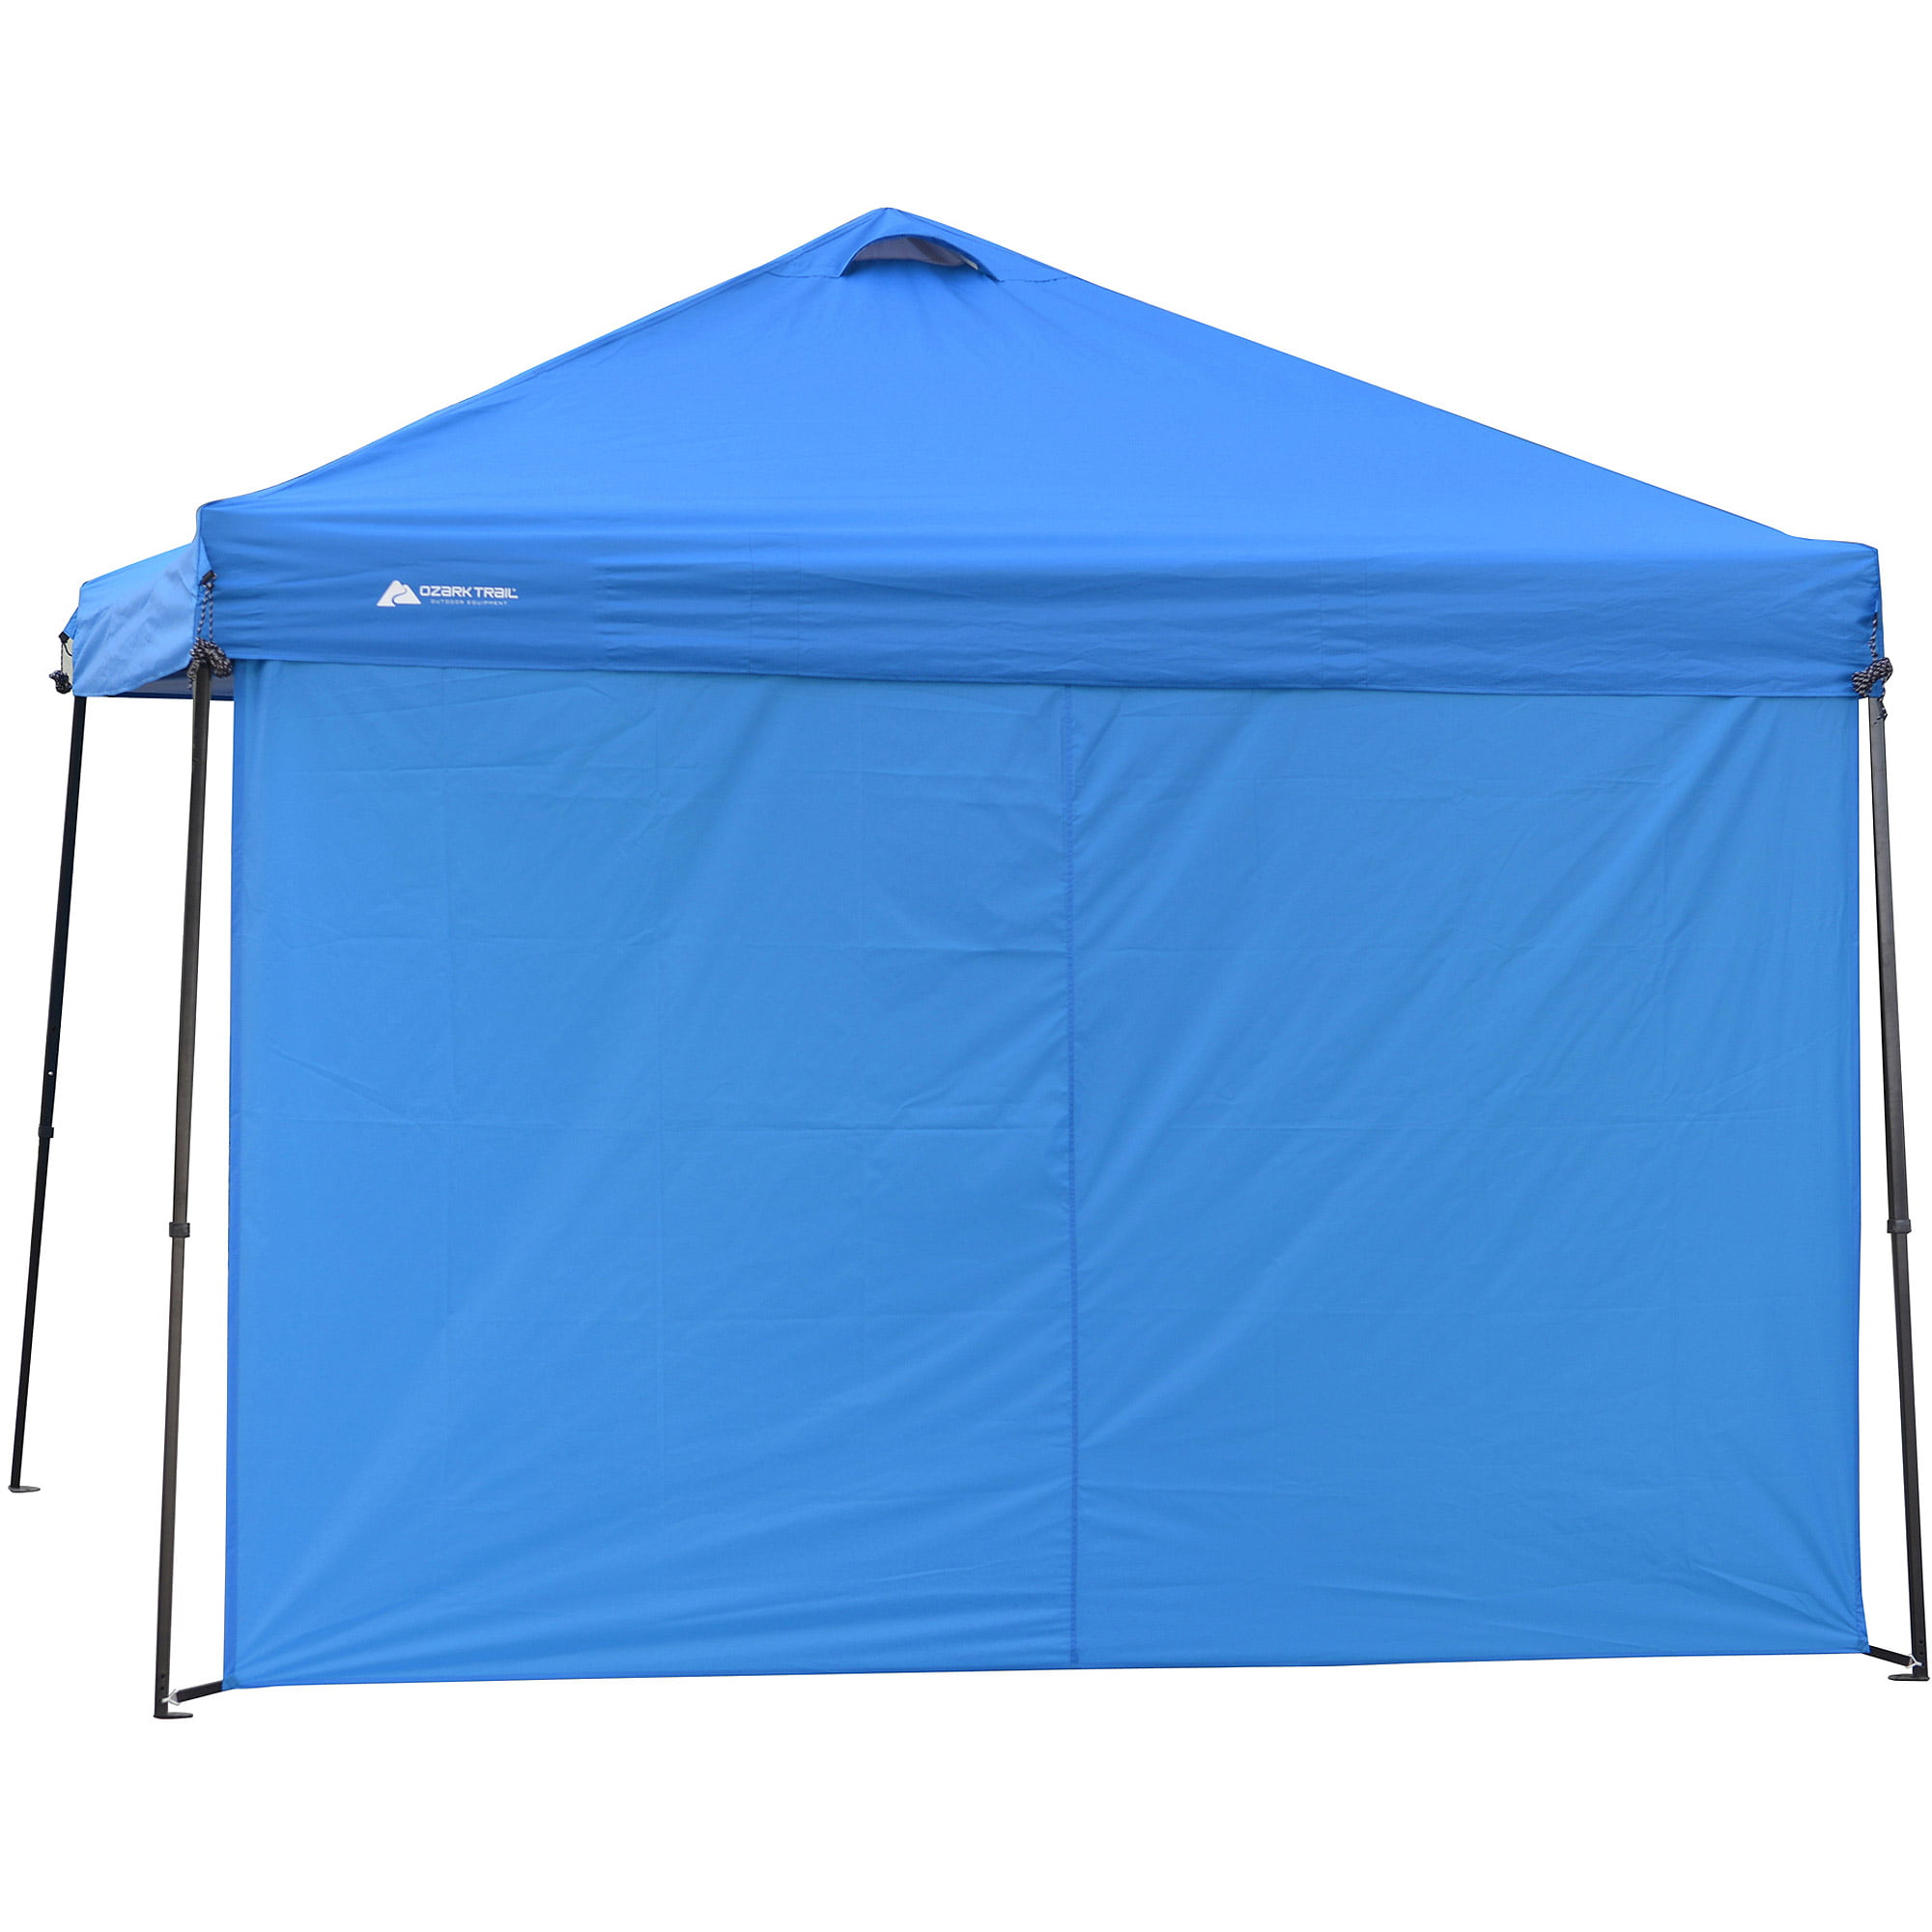 Ozark Trail Sun Wall for 10' x 10' Straight Leg Canopy   Gazebo by Zhejiang Zhentge Group Co. Ltd.